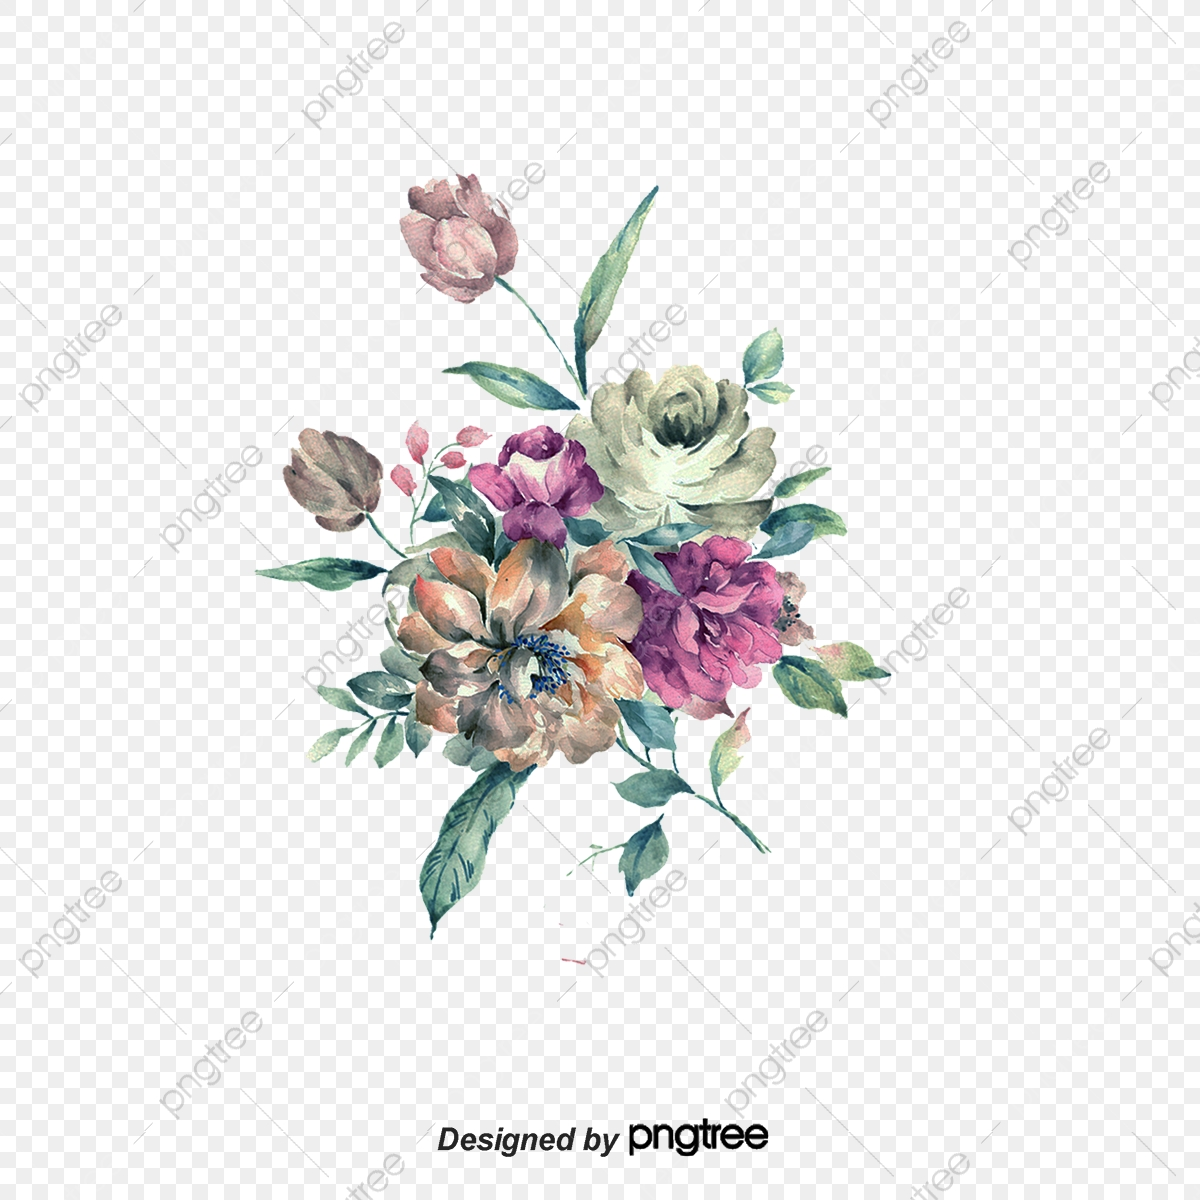 Vector Watercolor Flower Watercolor Vector Flower Png And